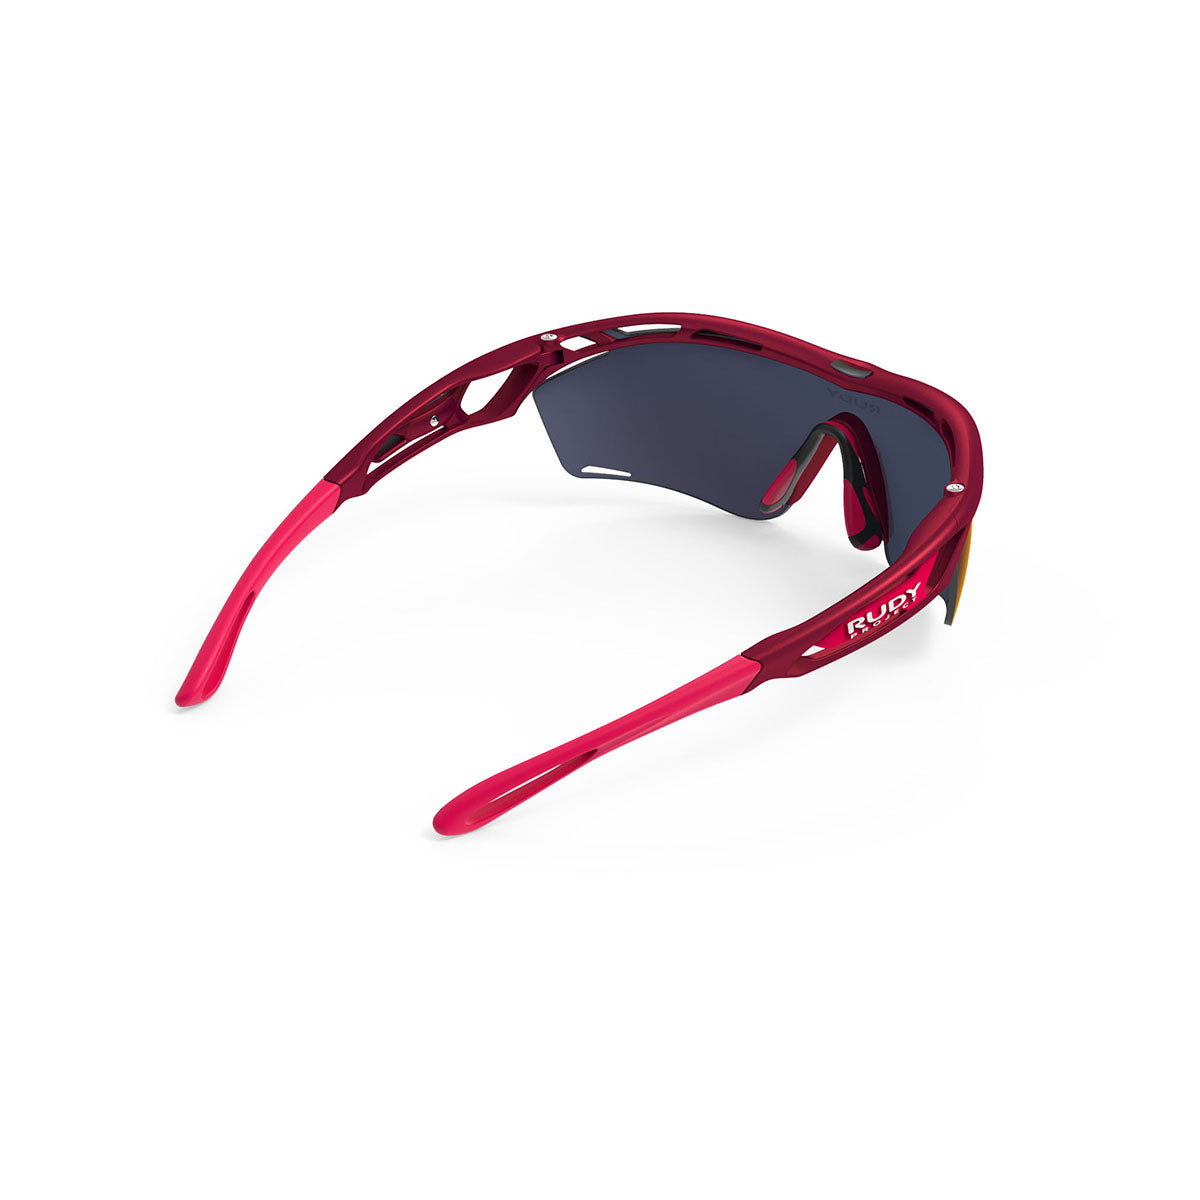 Rudy Project - Tralyx Slim - frame color: Merlot Matte - lens color: Multilaser Red - photo angle: Top Back Angle Variant Hover Image